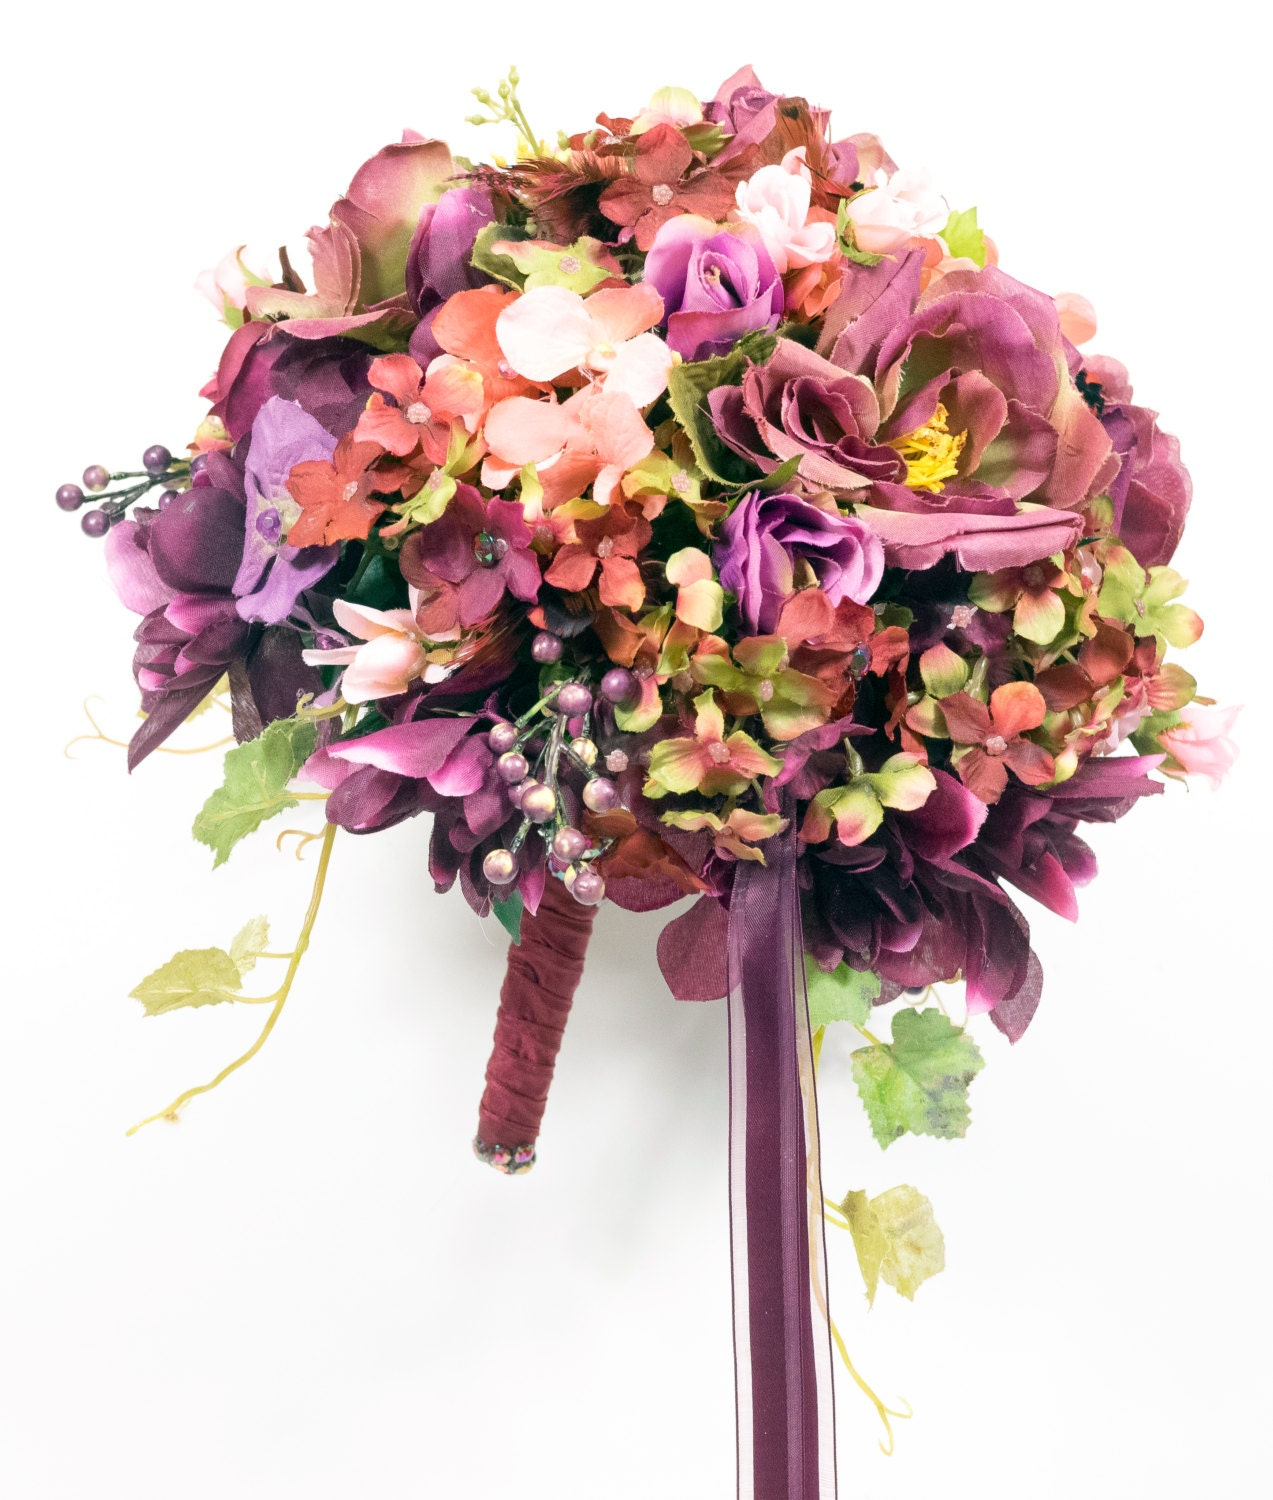 Wedding Bouquet Packages Silk : Silk flowers wedding bouquets packages by gailsforeverflowers